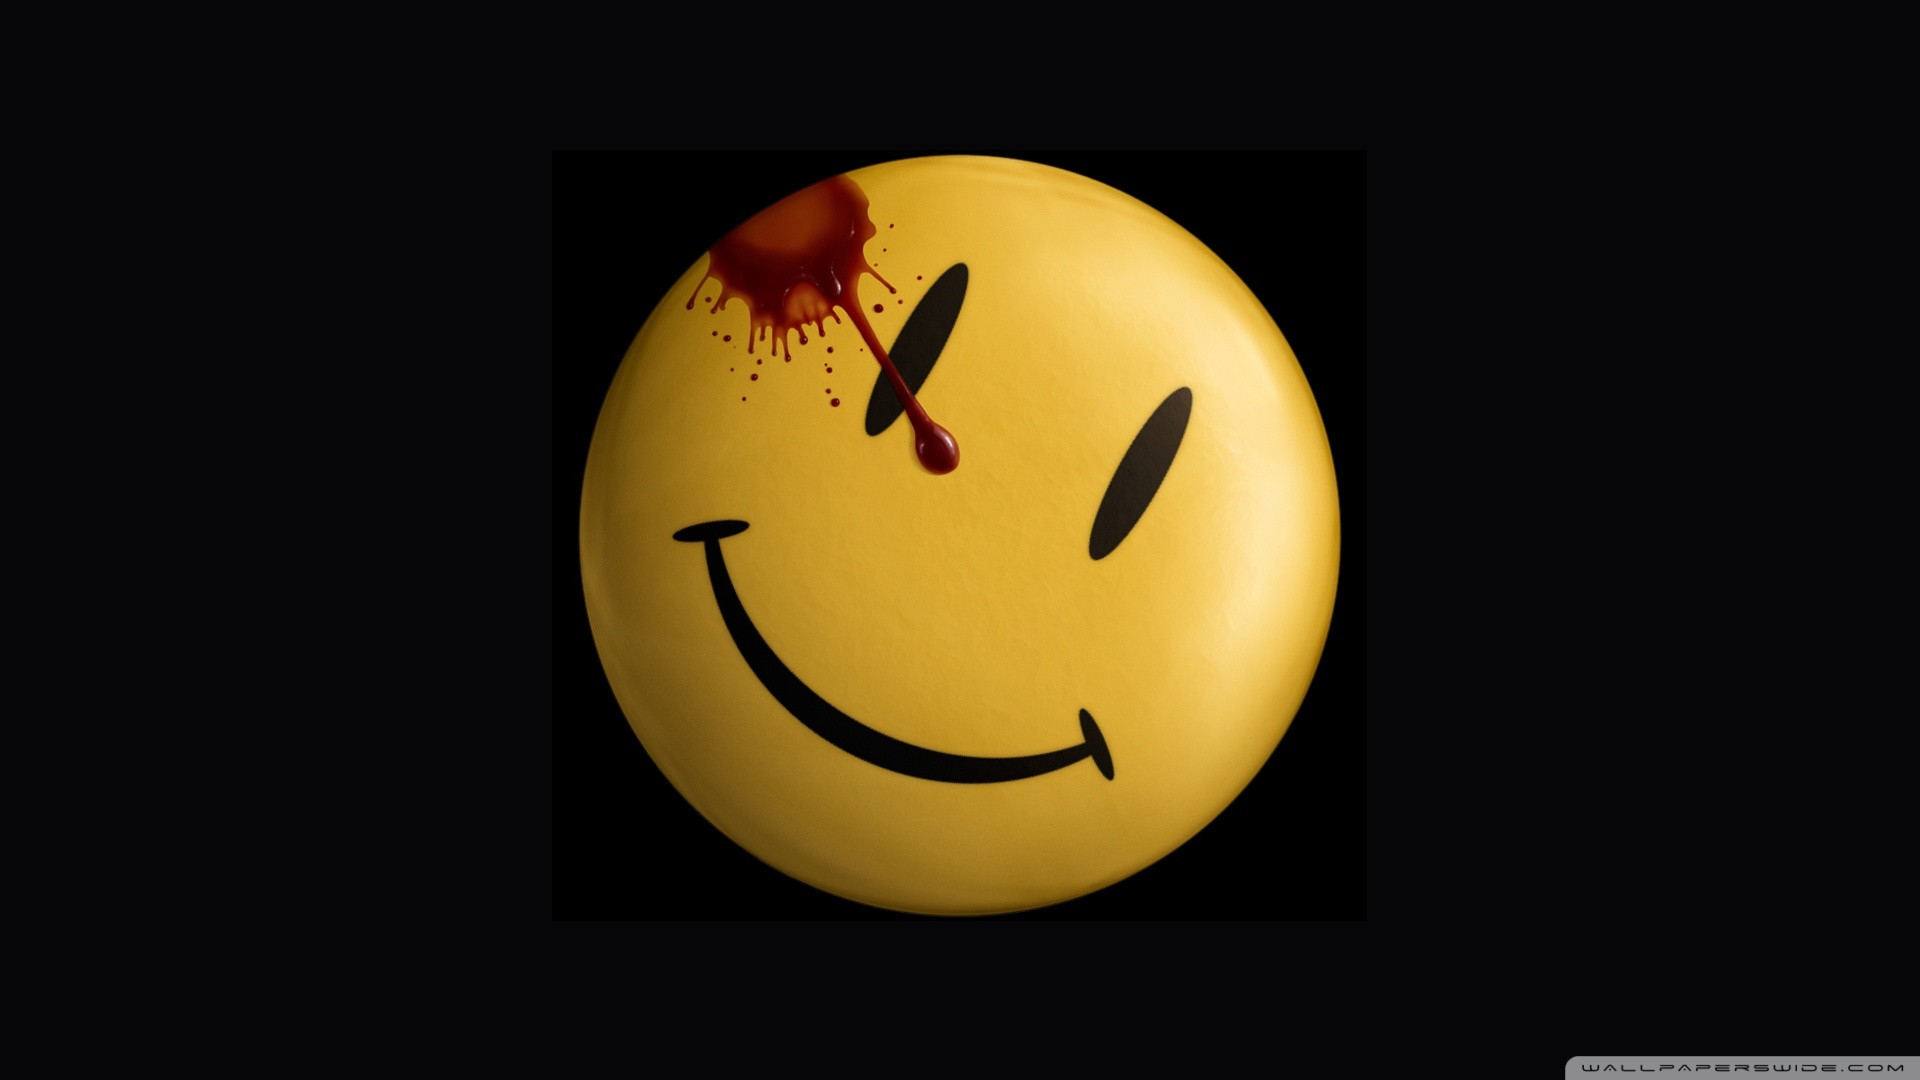 Hd Smiley Face Wallpaper: Smiley Face Wallpapers (55+ Images